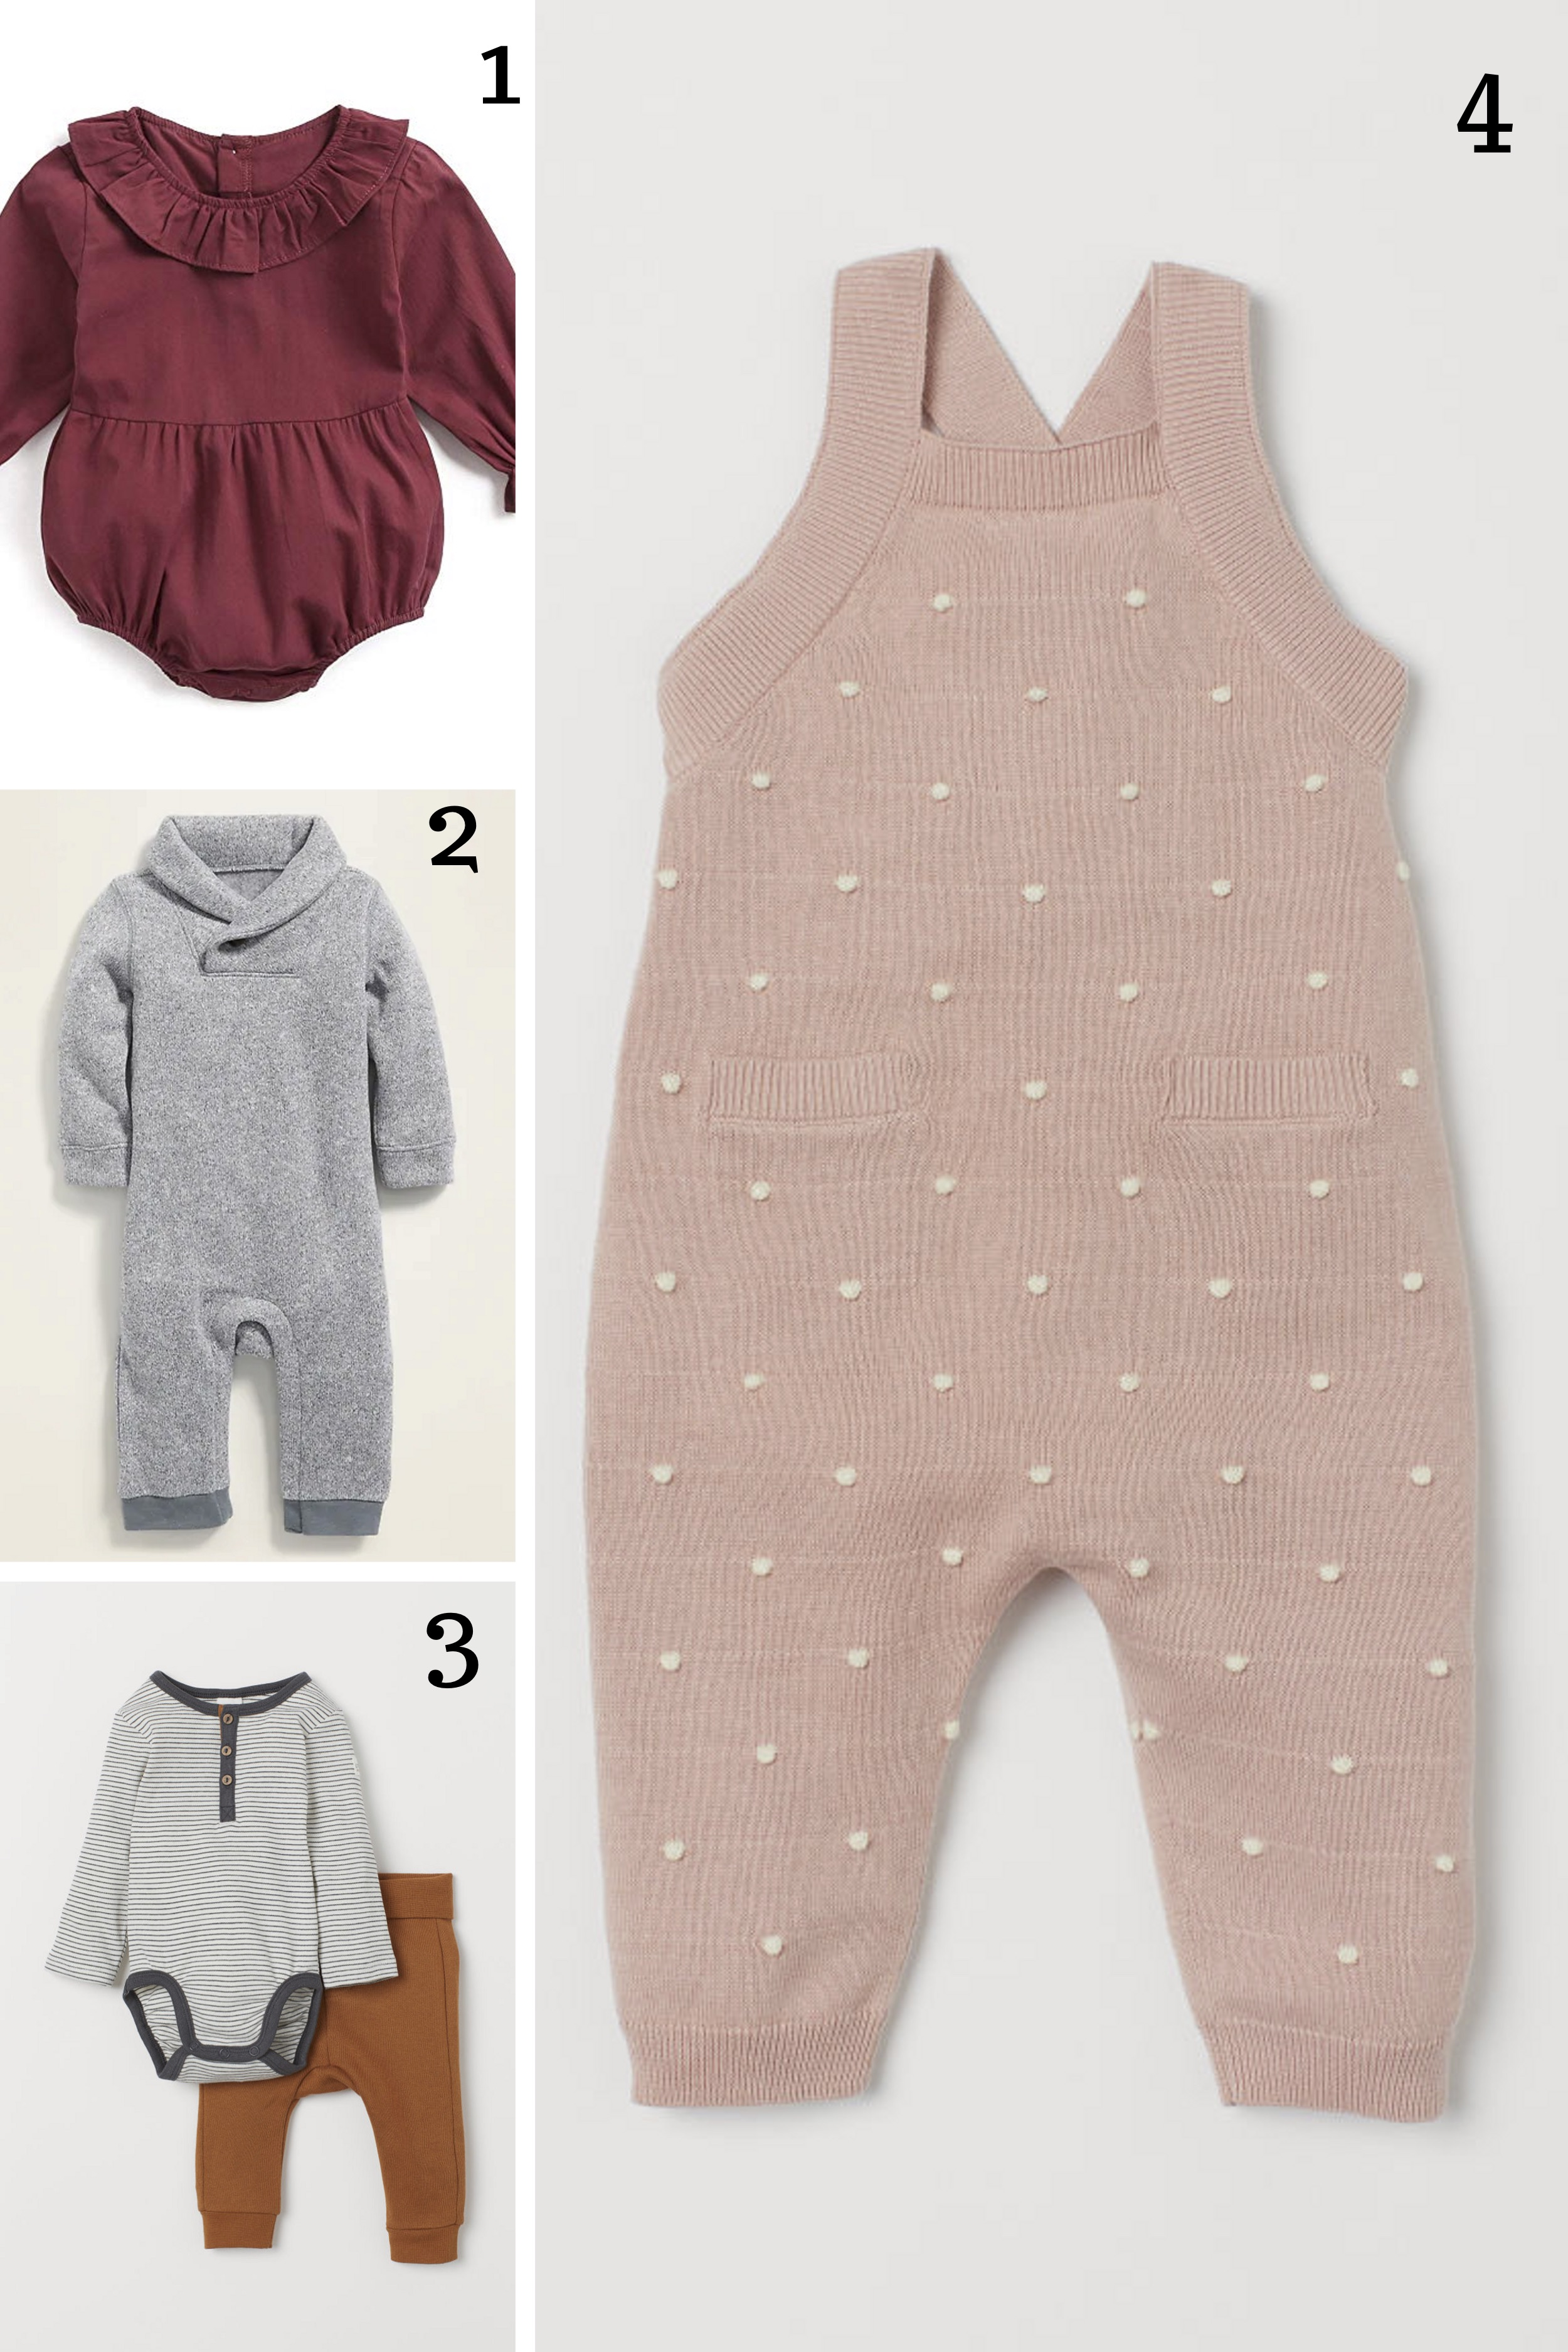 1.  Ruffle romper  || 2.  Shawl collar one piece  || 3.  Body suit and pants  || 4.  Knit overalls